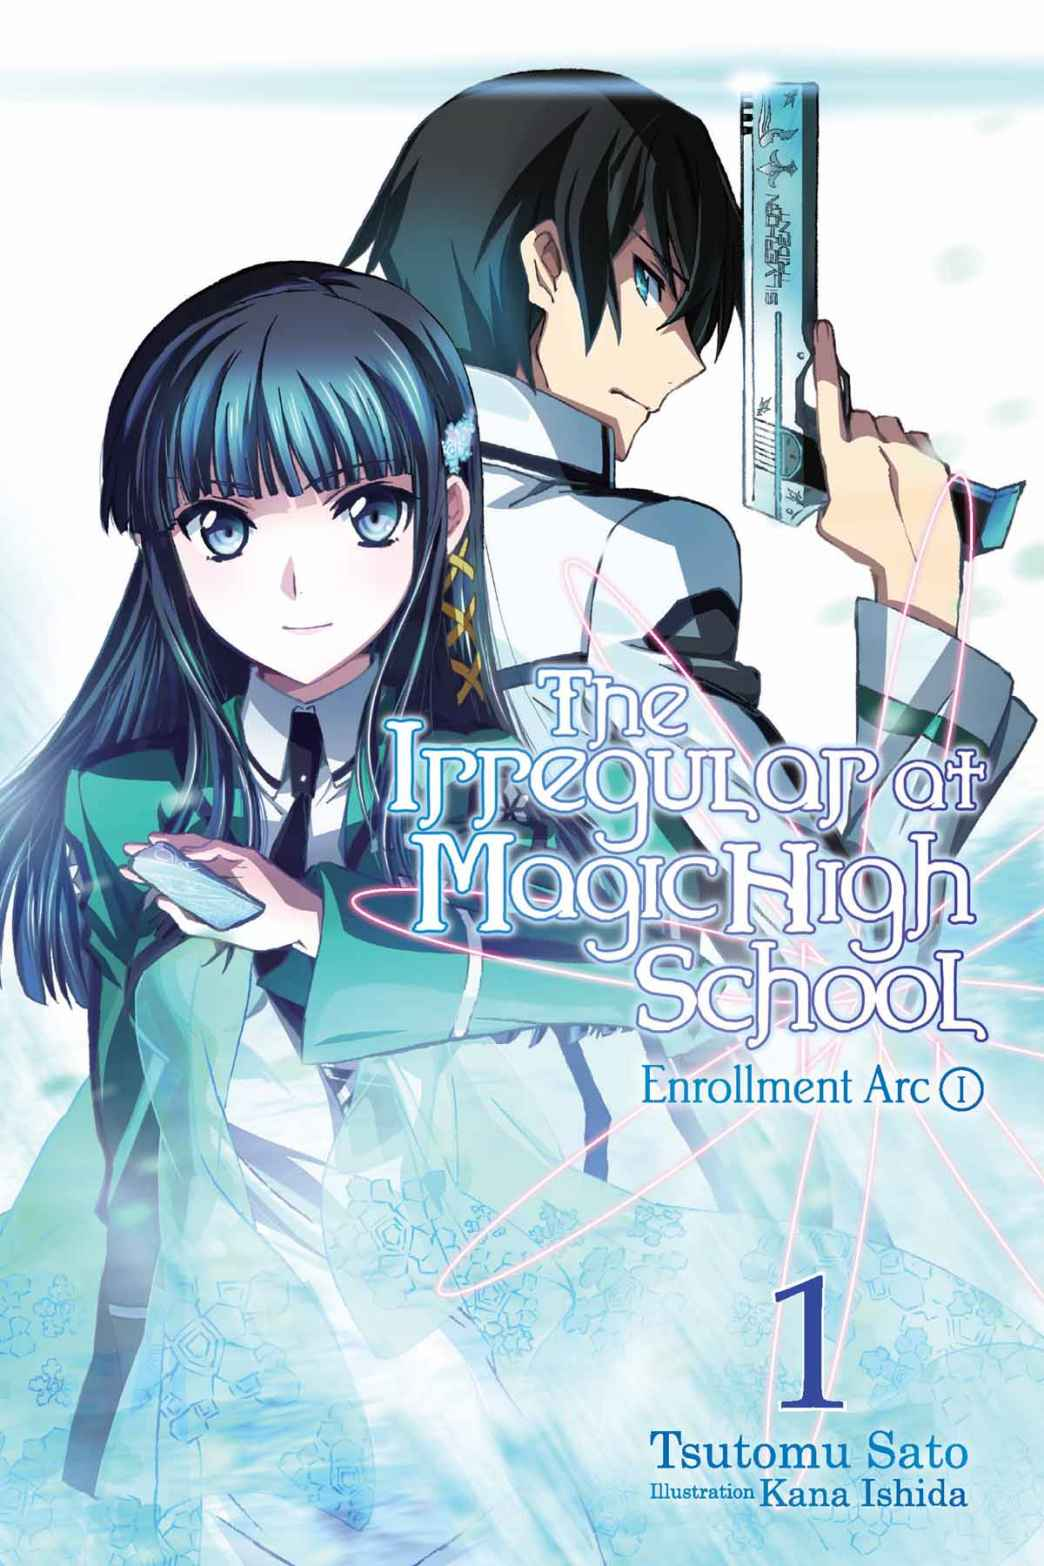 ▷ MAHOUKA Koukou no RETTOUSEI: magia y tecnología se unen ✅ Las novelas ligeras Mahouka Koukou no Rettousei ✅ Light novels que inspiraron el anime ⭐ ¿Dónde comprar The Irregular at Magic High School?